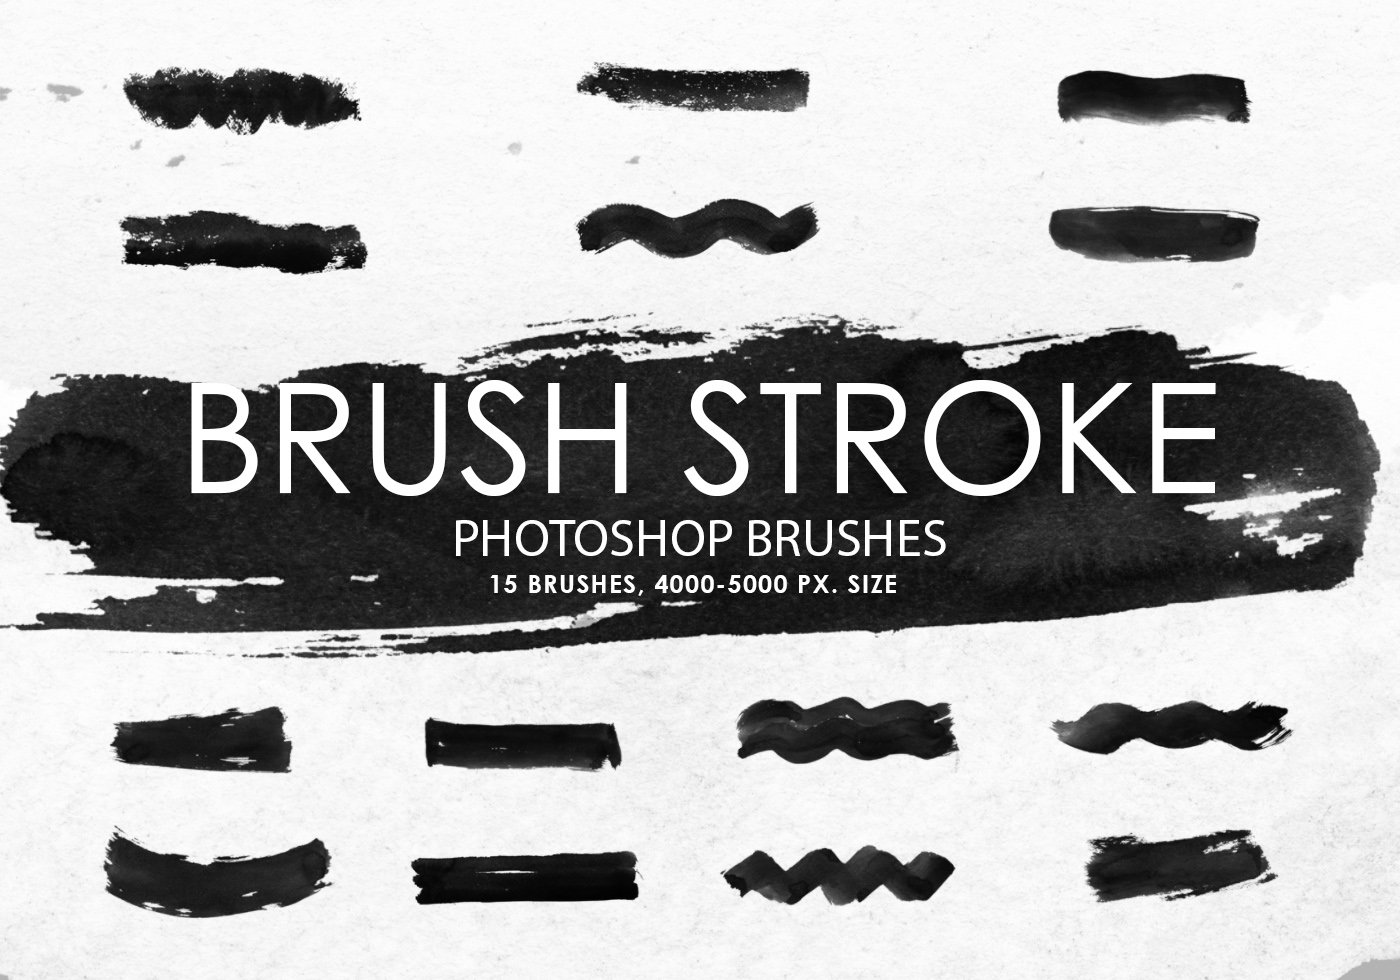 20 Sites to Download Free Photoshop Brushes – What Photography Gear